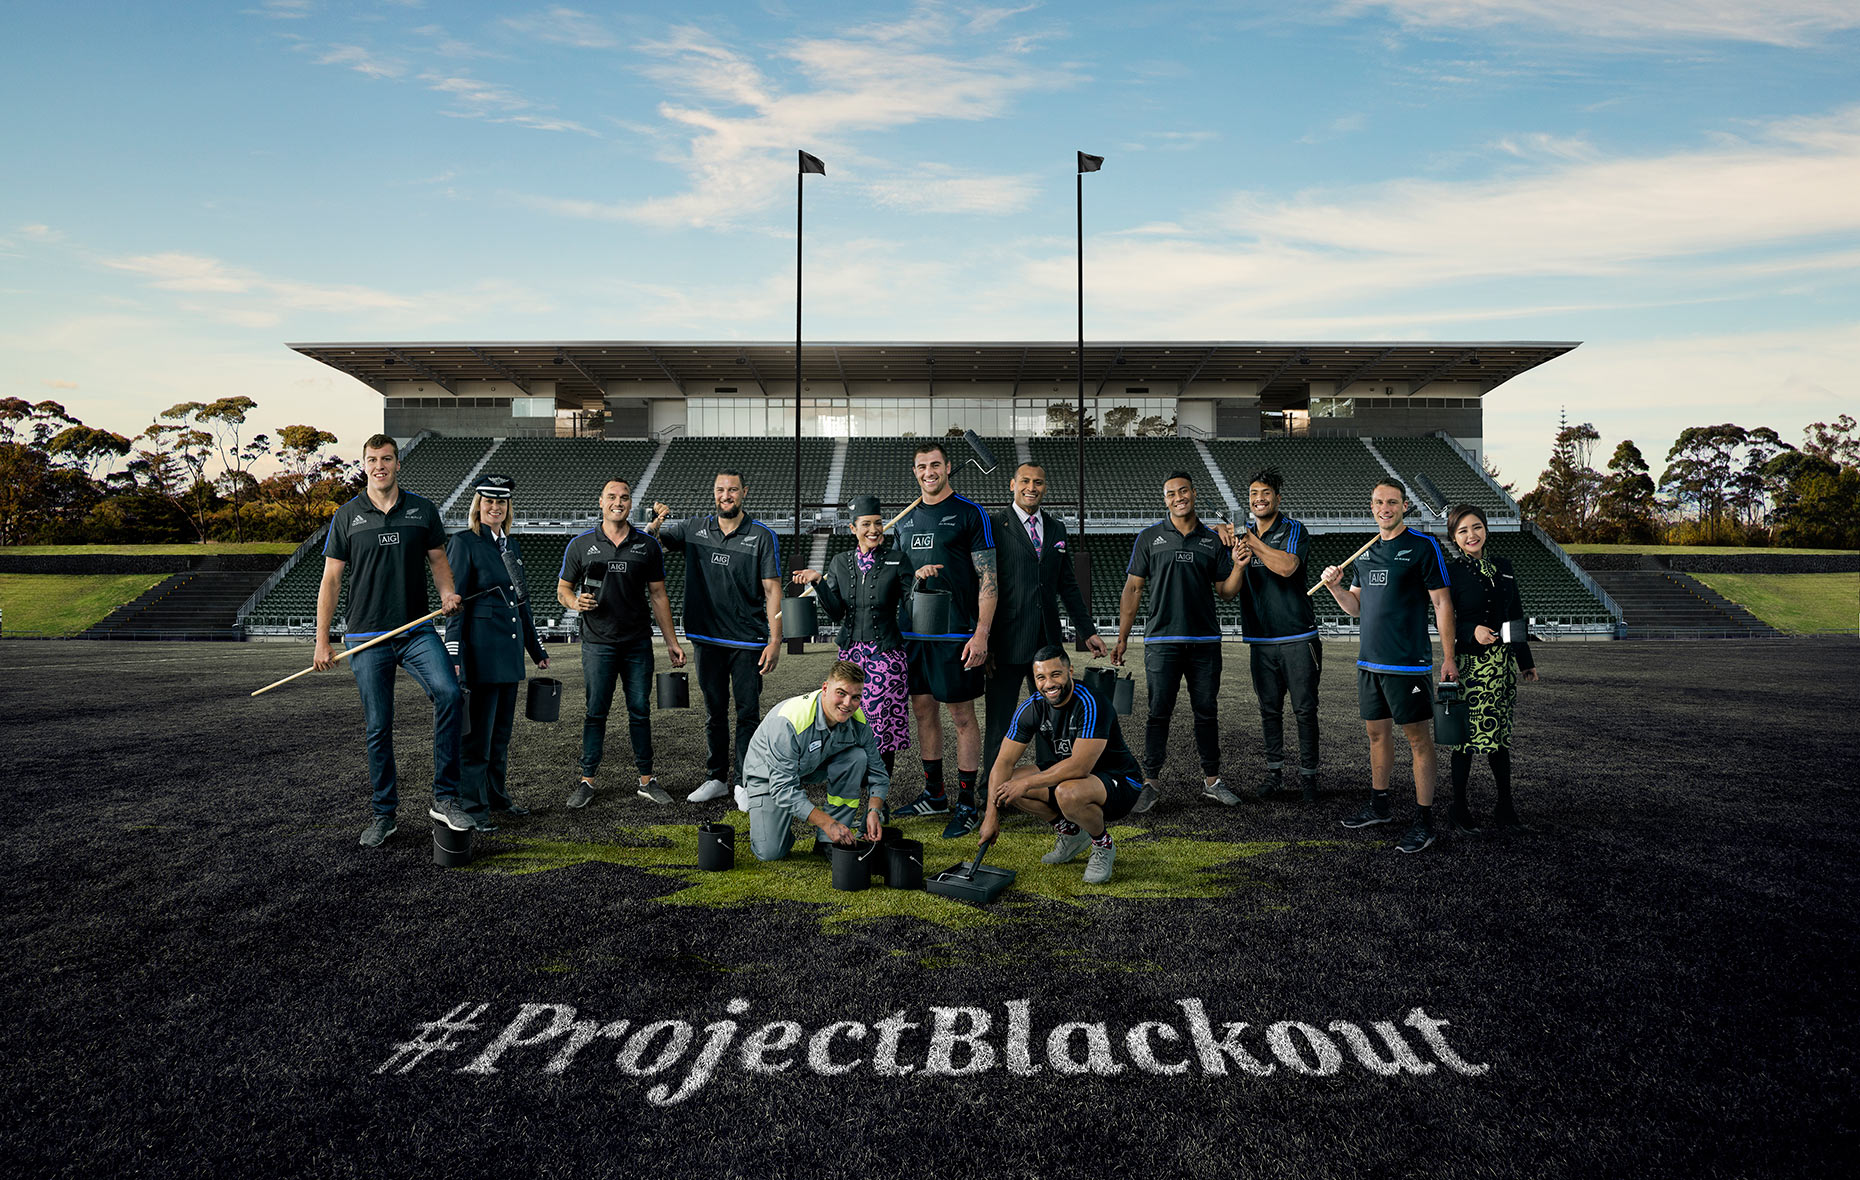 Advertising  Photographer for Air New Zealand and the all blacks, retouching and Photography Photoshop.